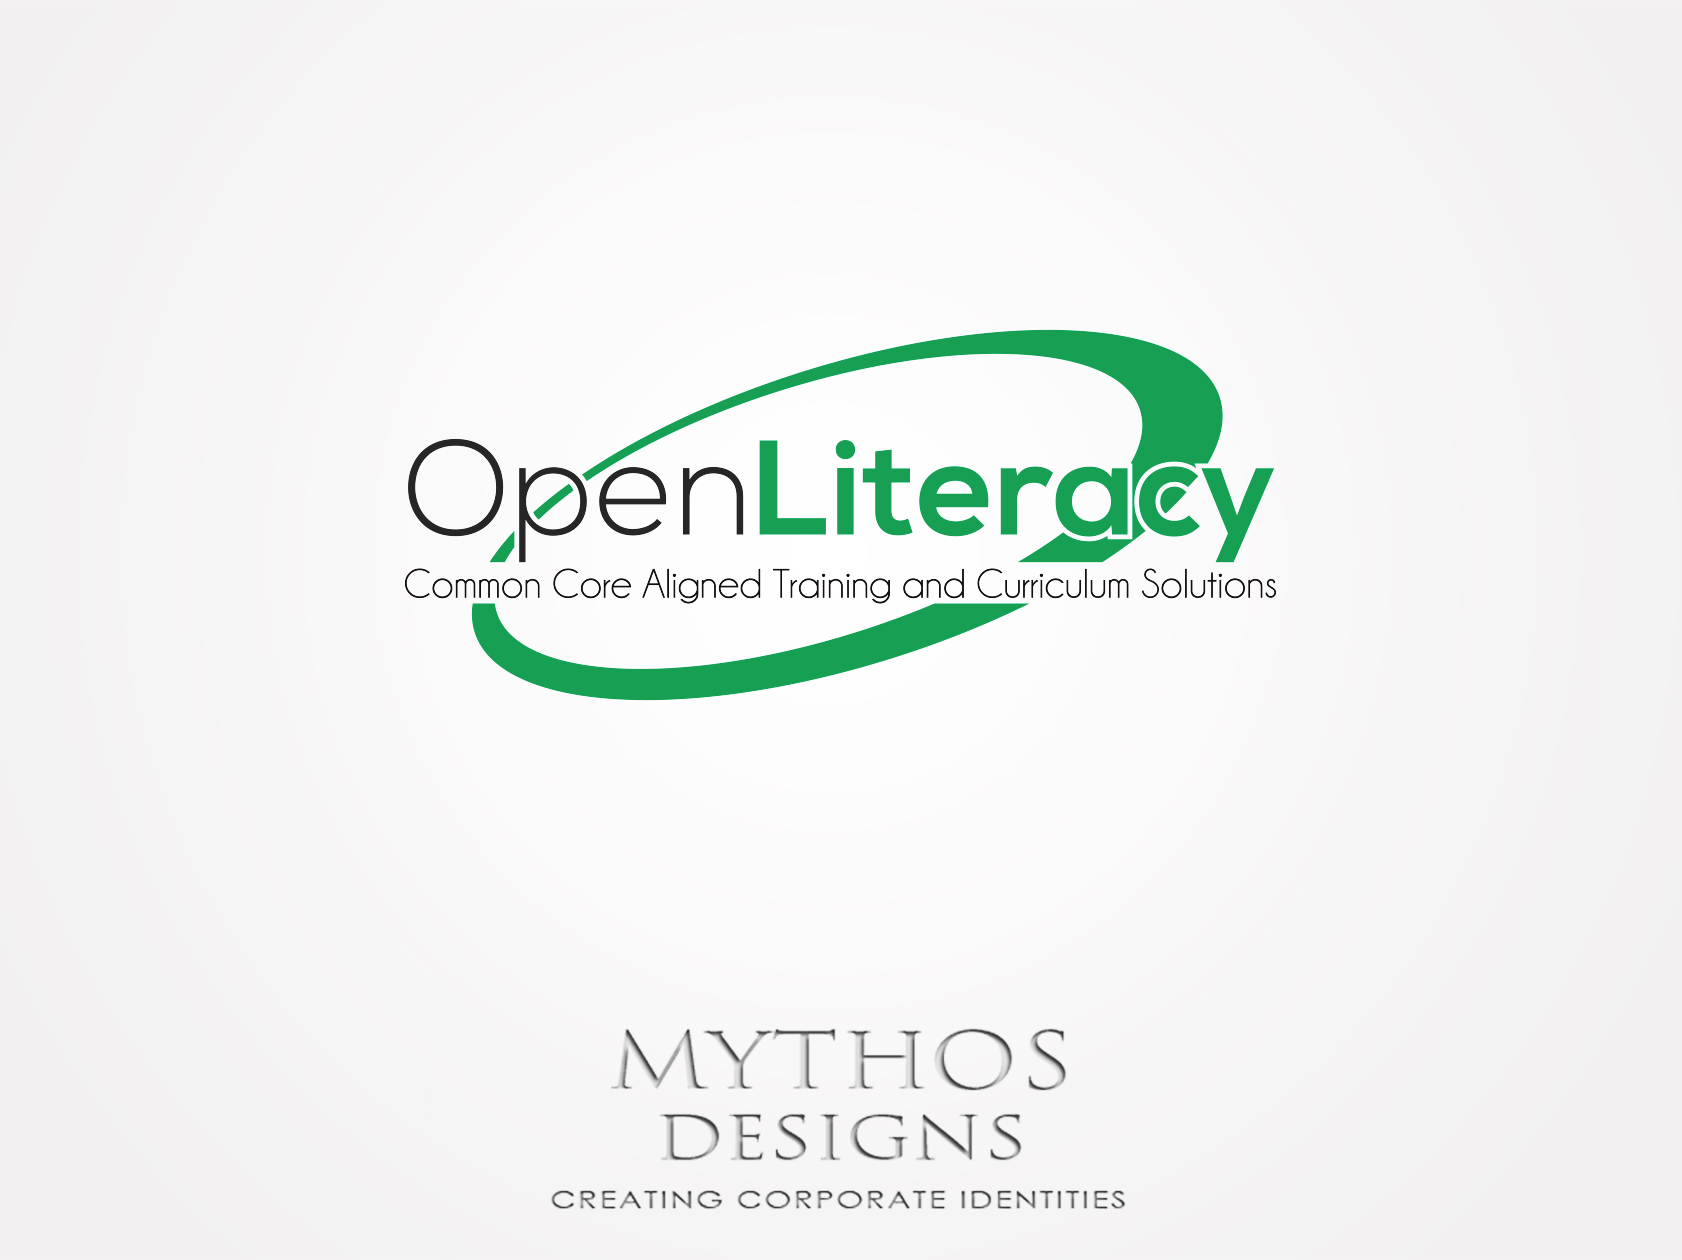 Logo Design by Mythos Designs - Entry No. 100 in the Logo Design Contest Inspiring Logo Design for OpenLiteracy.